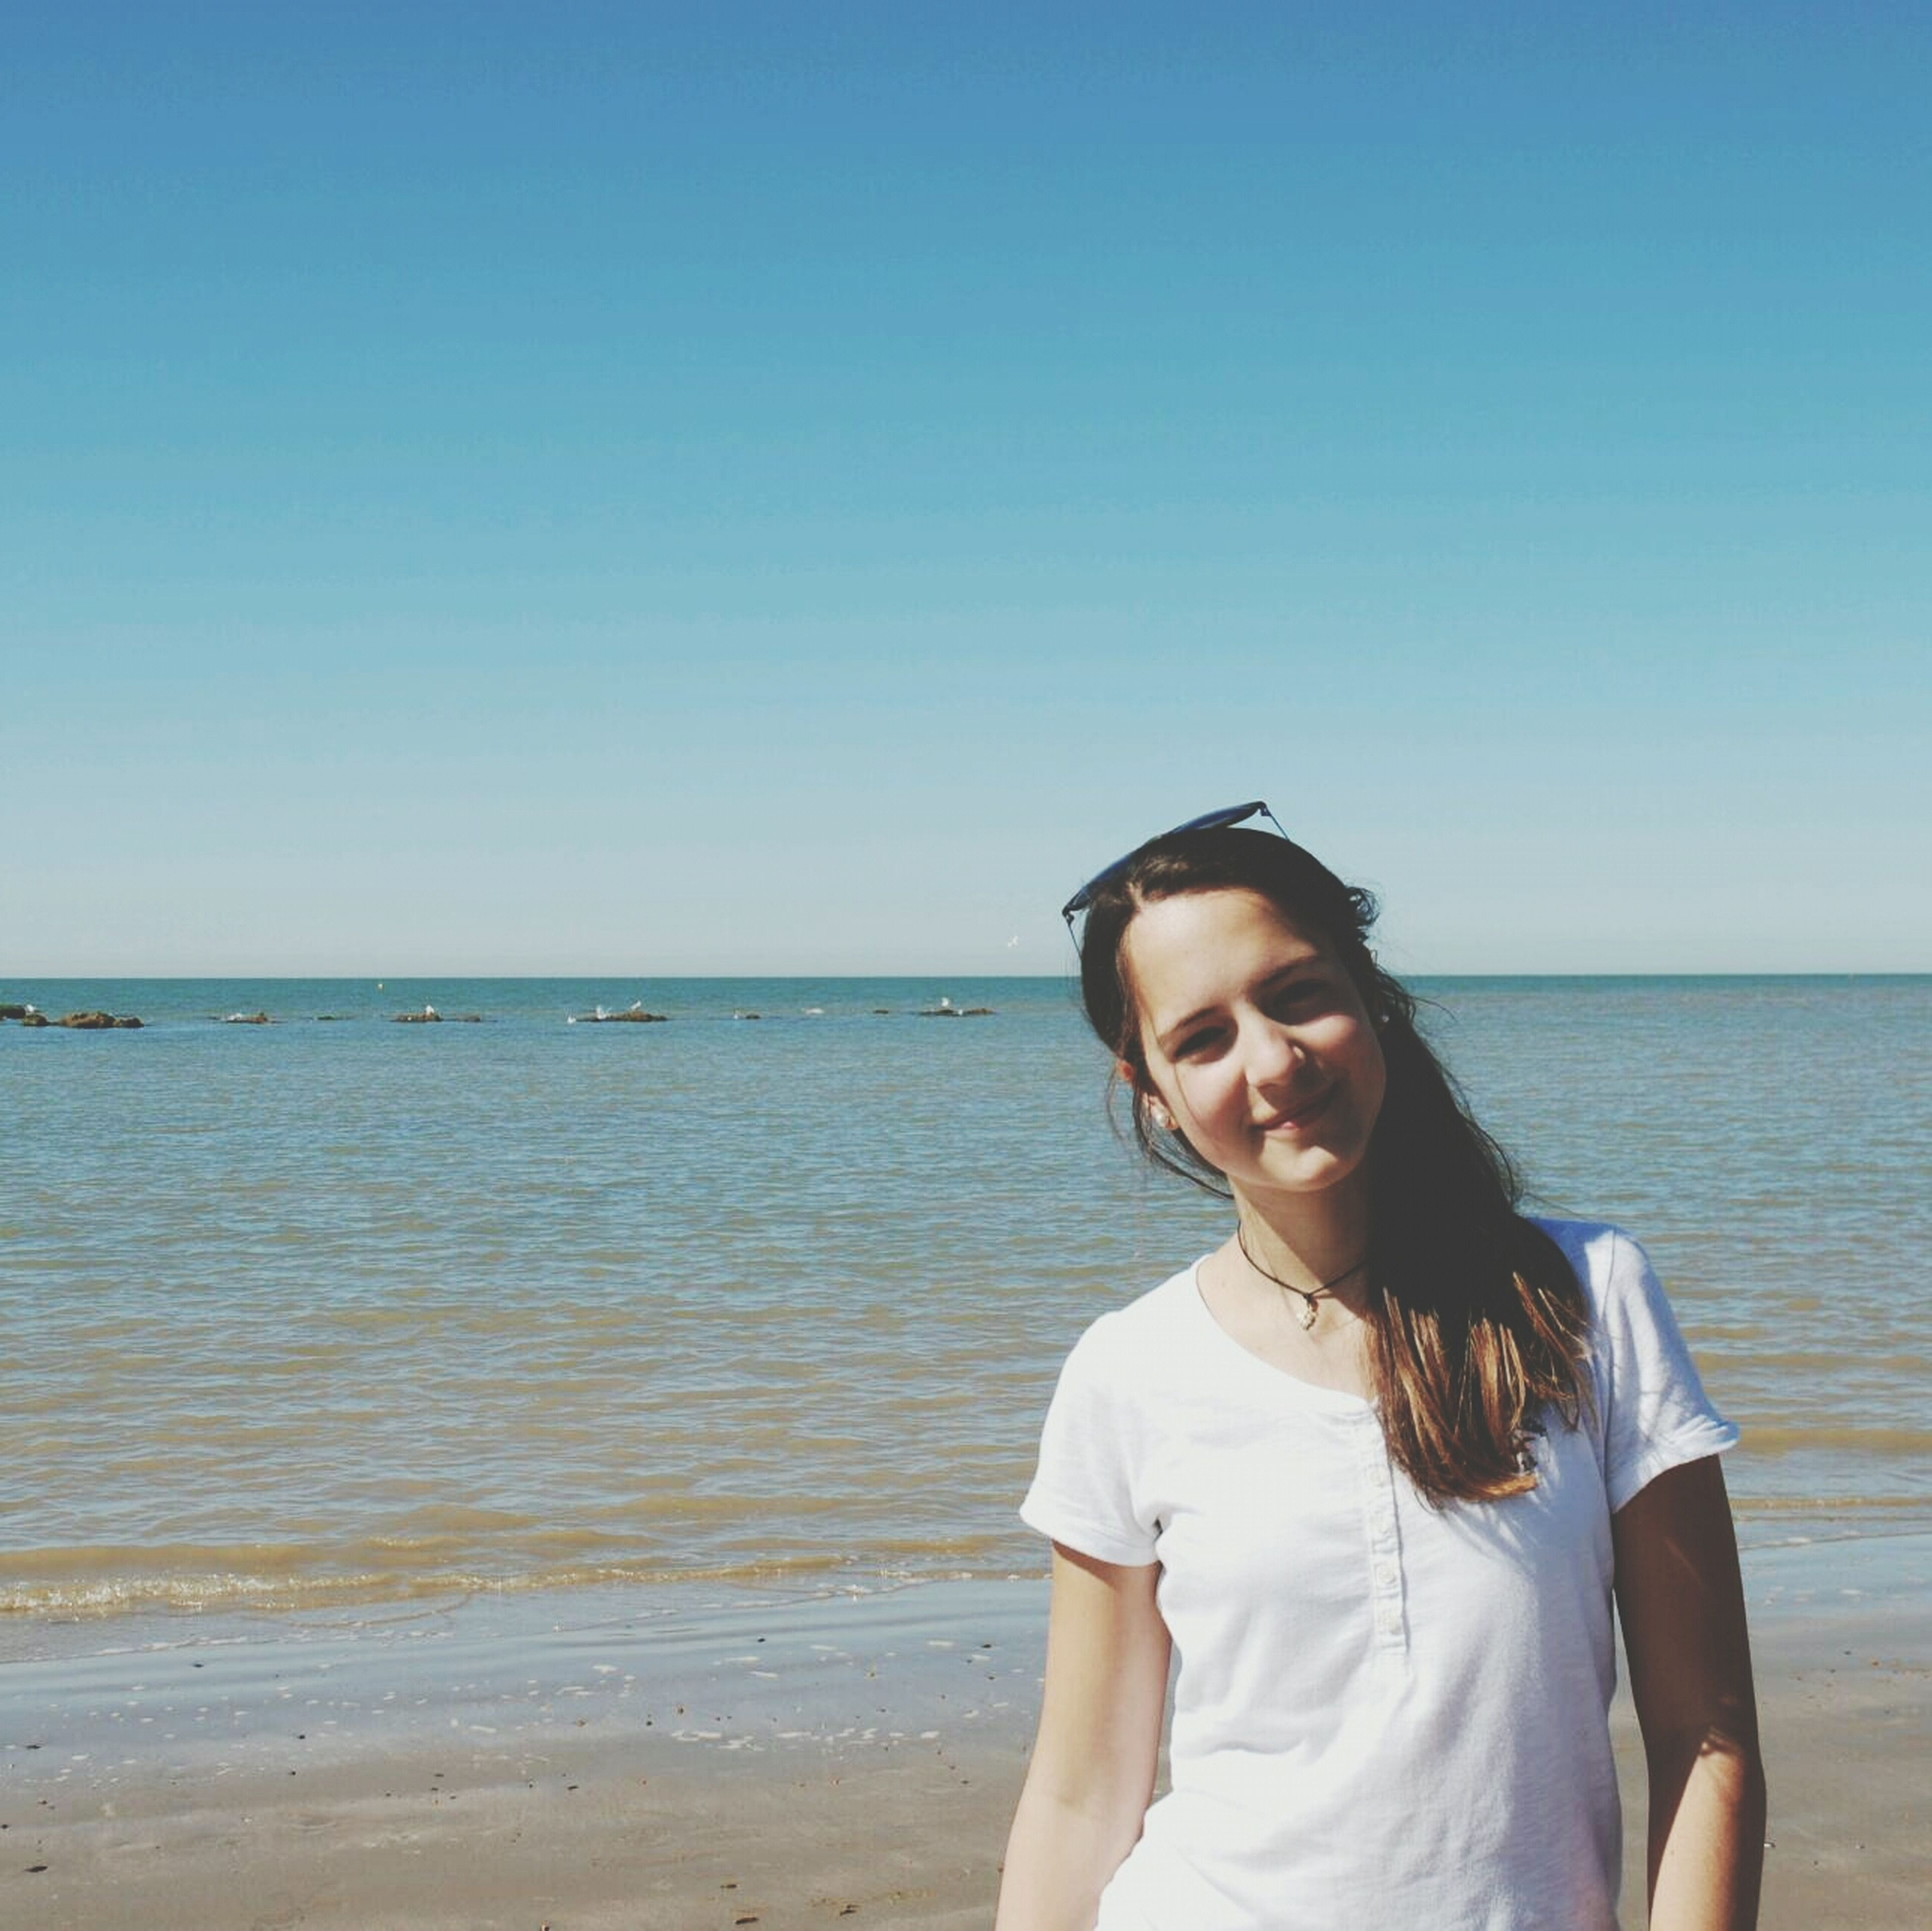 sea, water, clear sky, beach, horizon over water, copy space, young adult, lifestyles, leisure activity, shore, person, vacations, blue, beauty in nature, tranquility, scenics, nature, young women